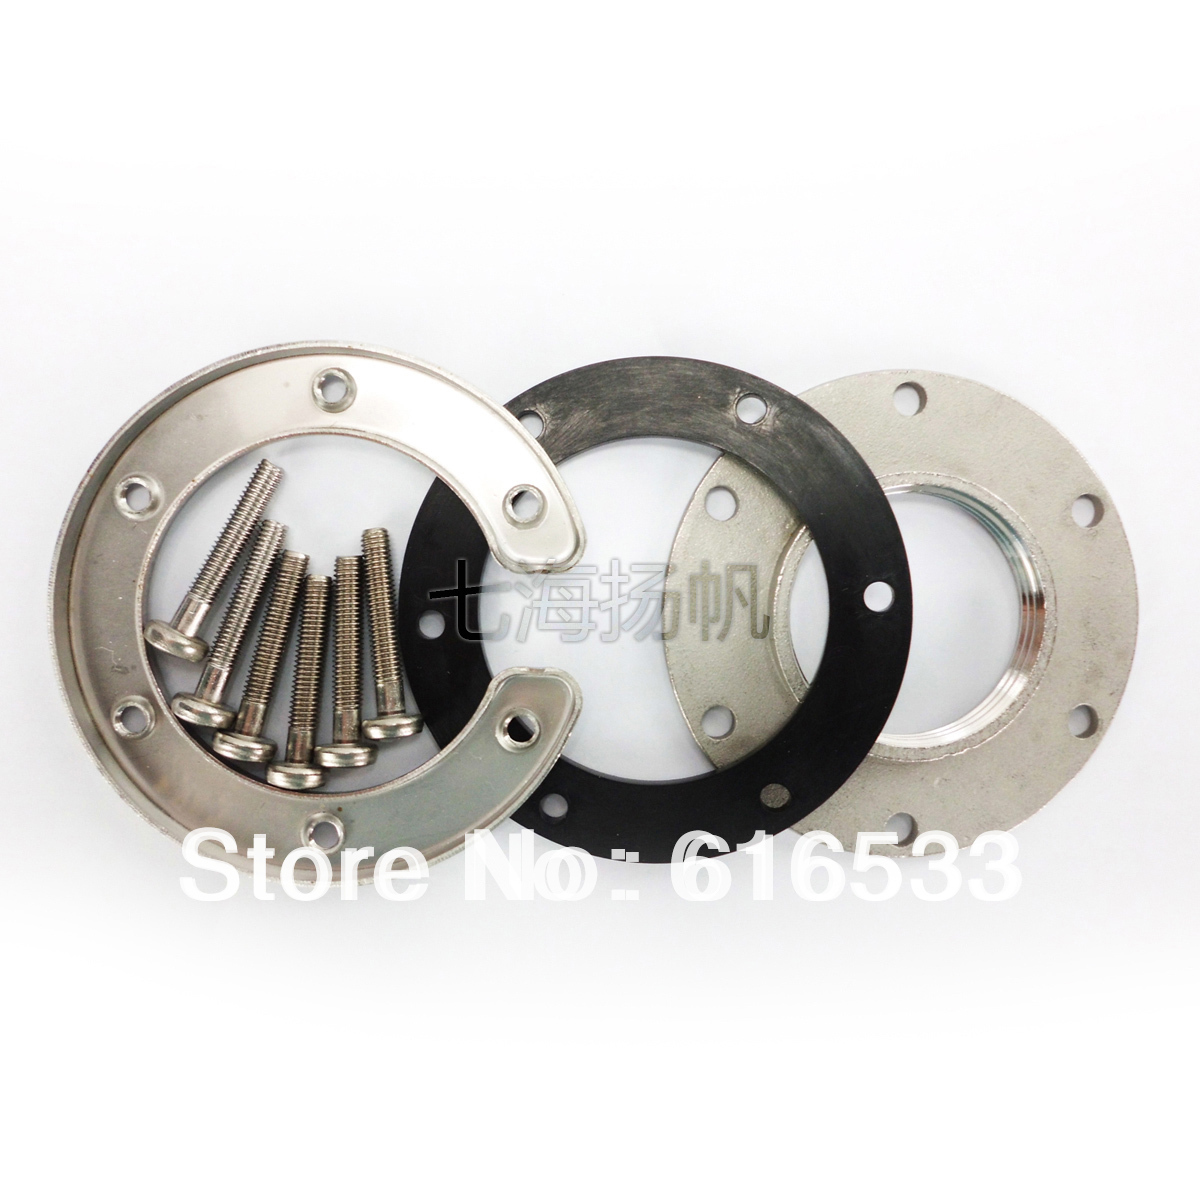 KUS Stainless Steel Flange Matched With S3/S3H Series Sensor Marine Yacht Sailing Ship Car Boat Accessories